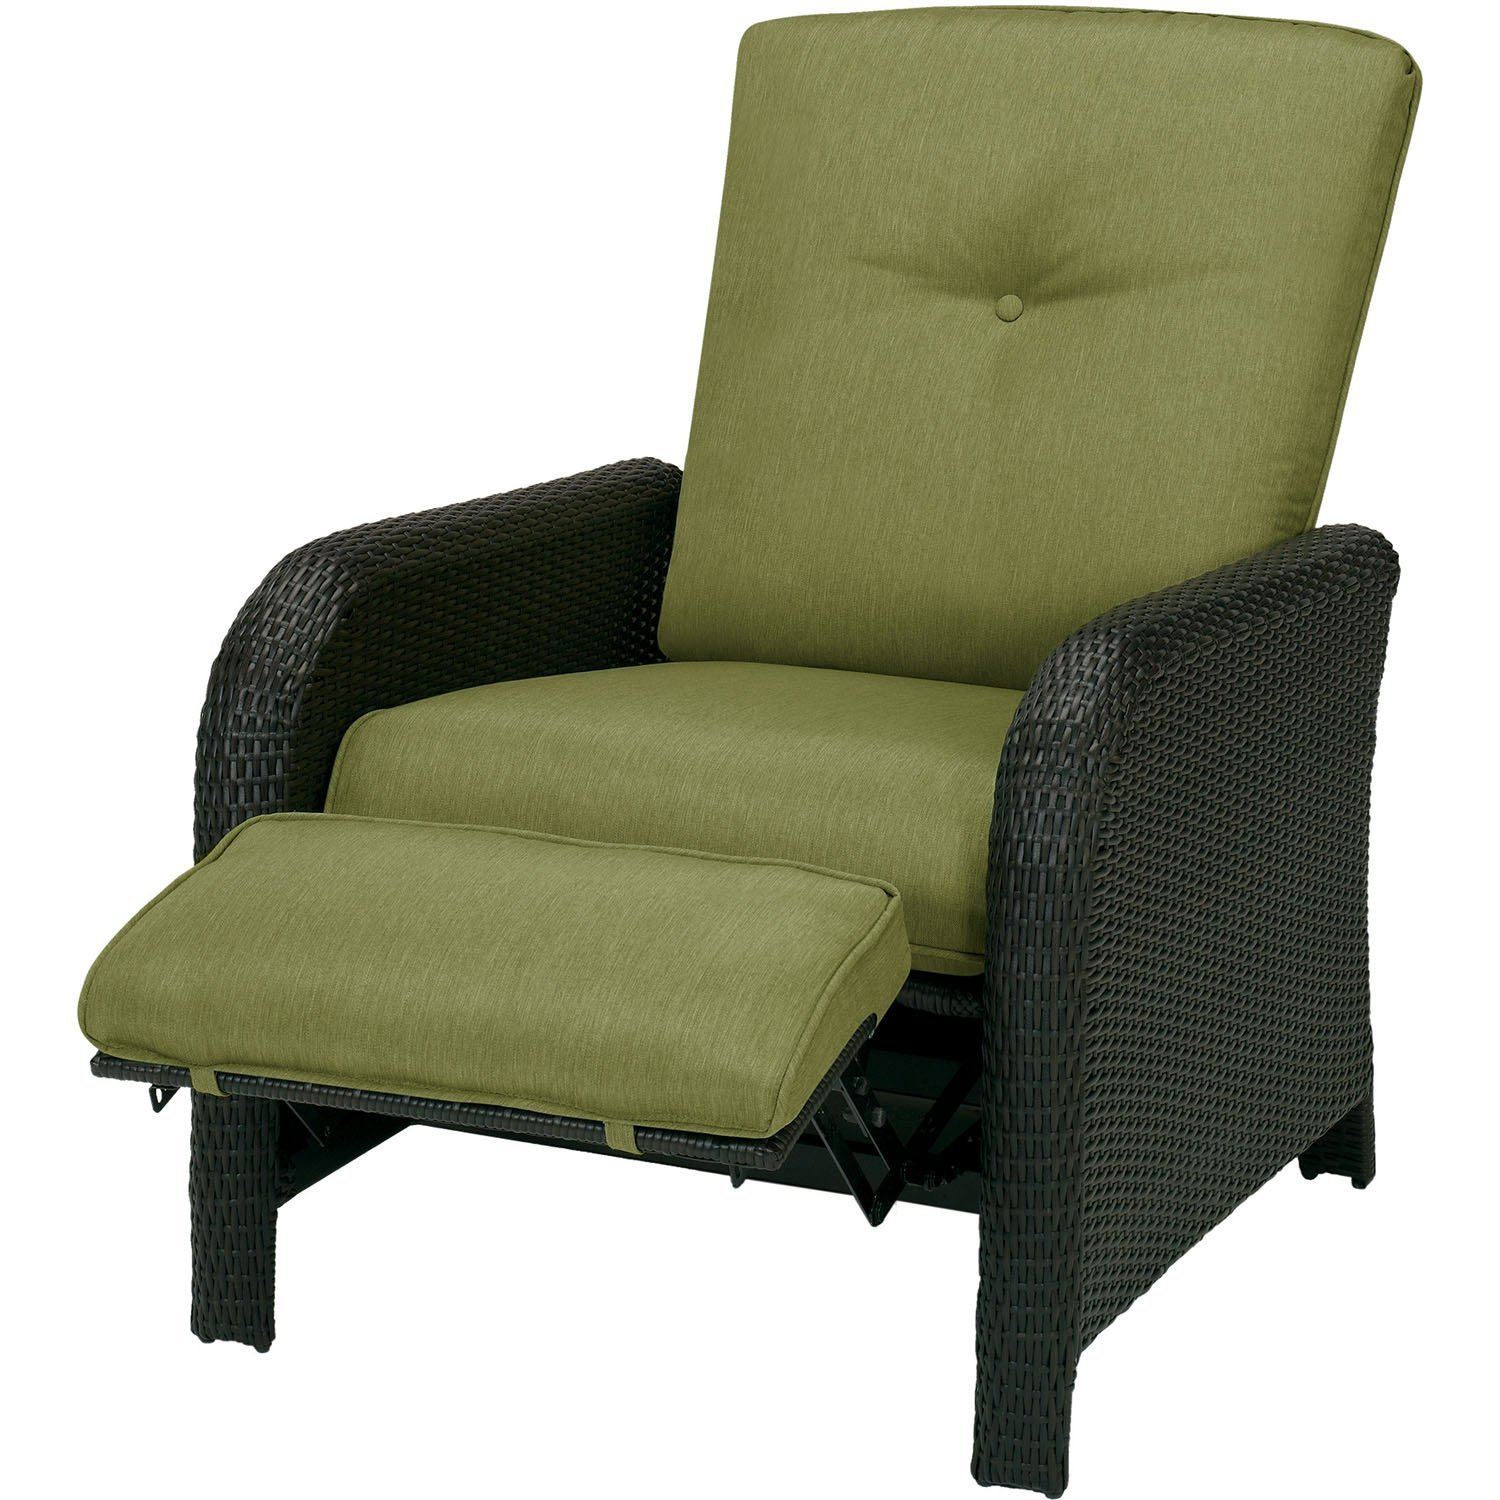 Best value outdoor wicker recliners the best recliner for Reclining patio chair